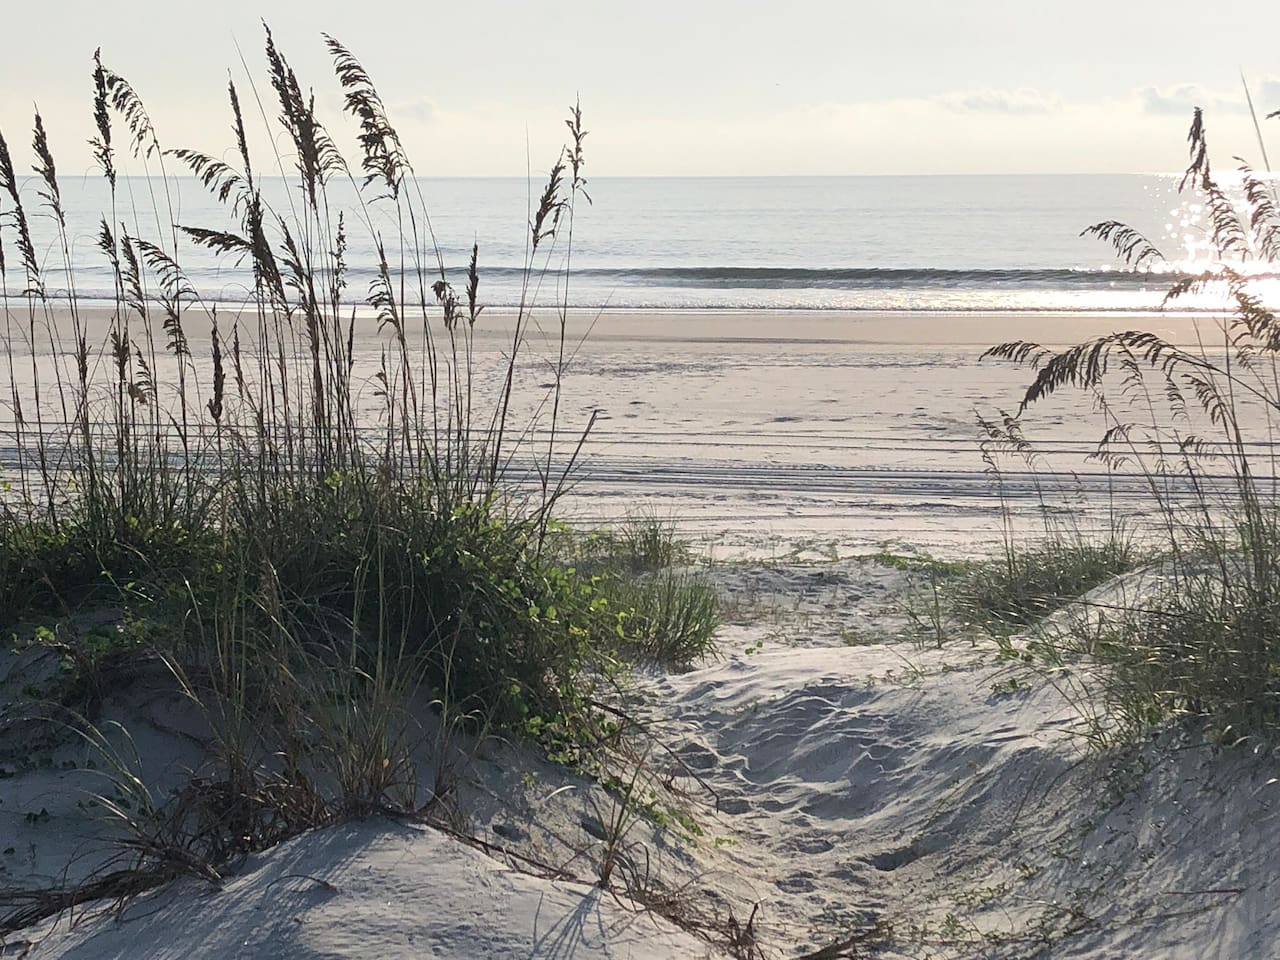 Crescent Beach beautiful white sand 3 minute private walk from condo to beach through the dunes.